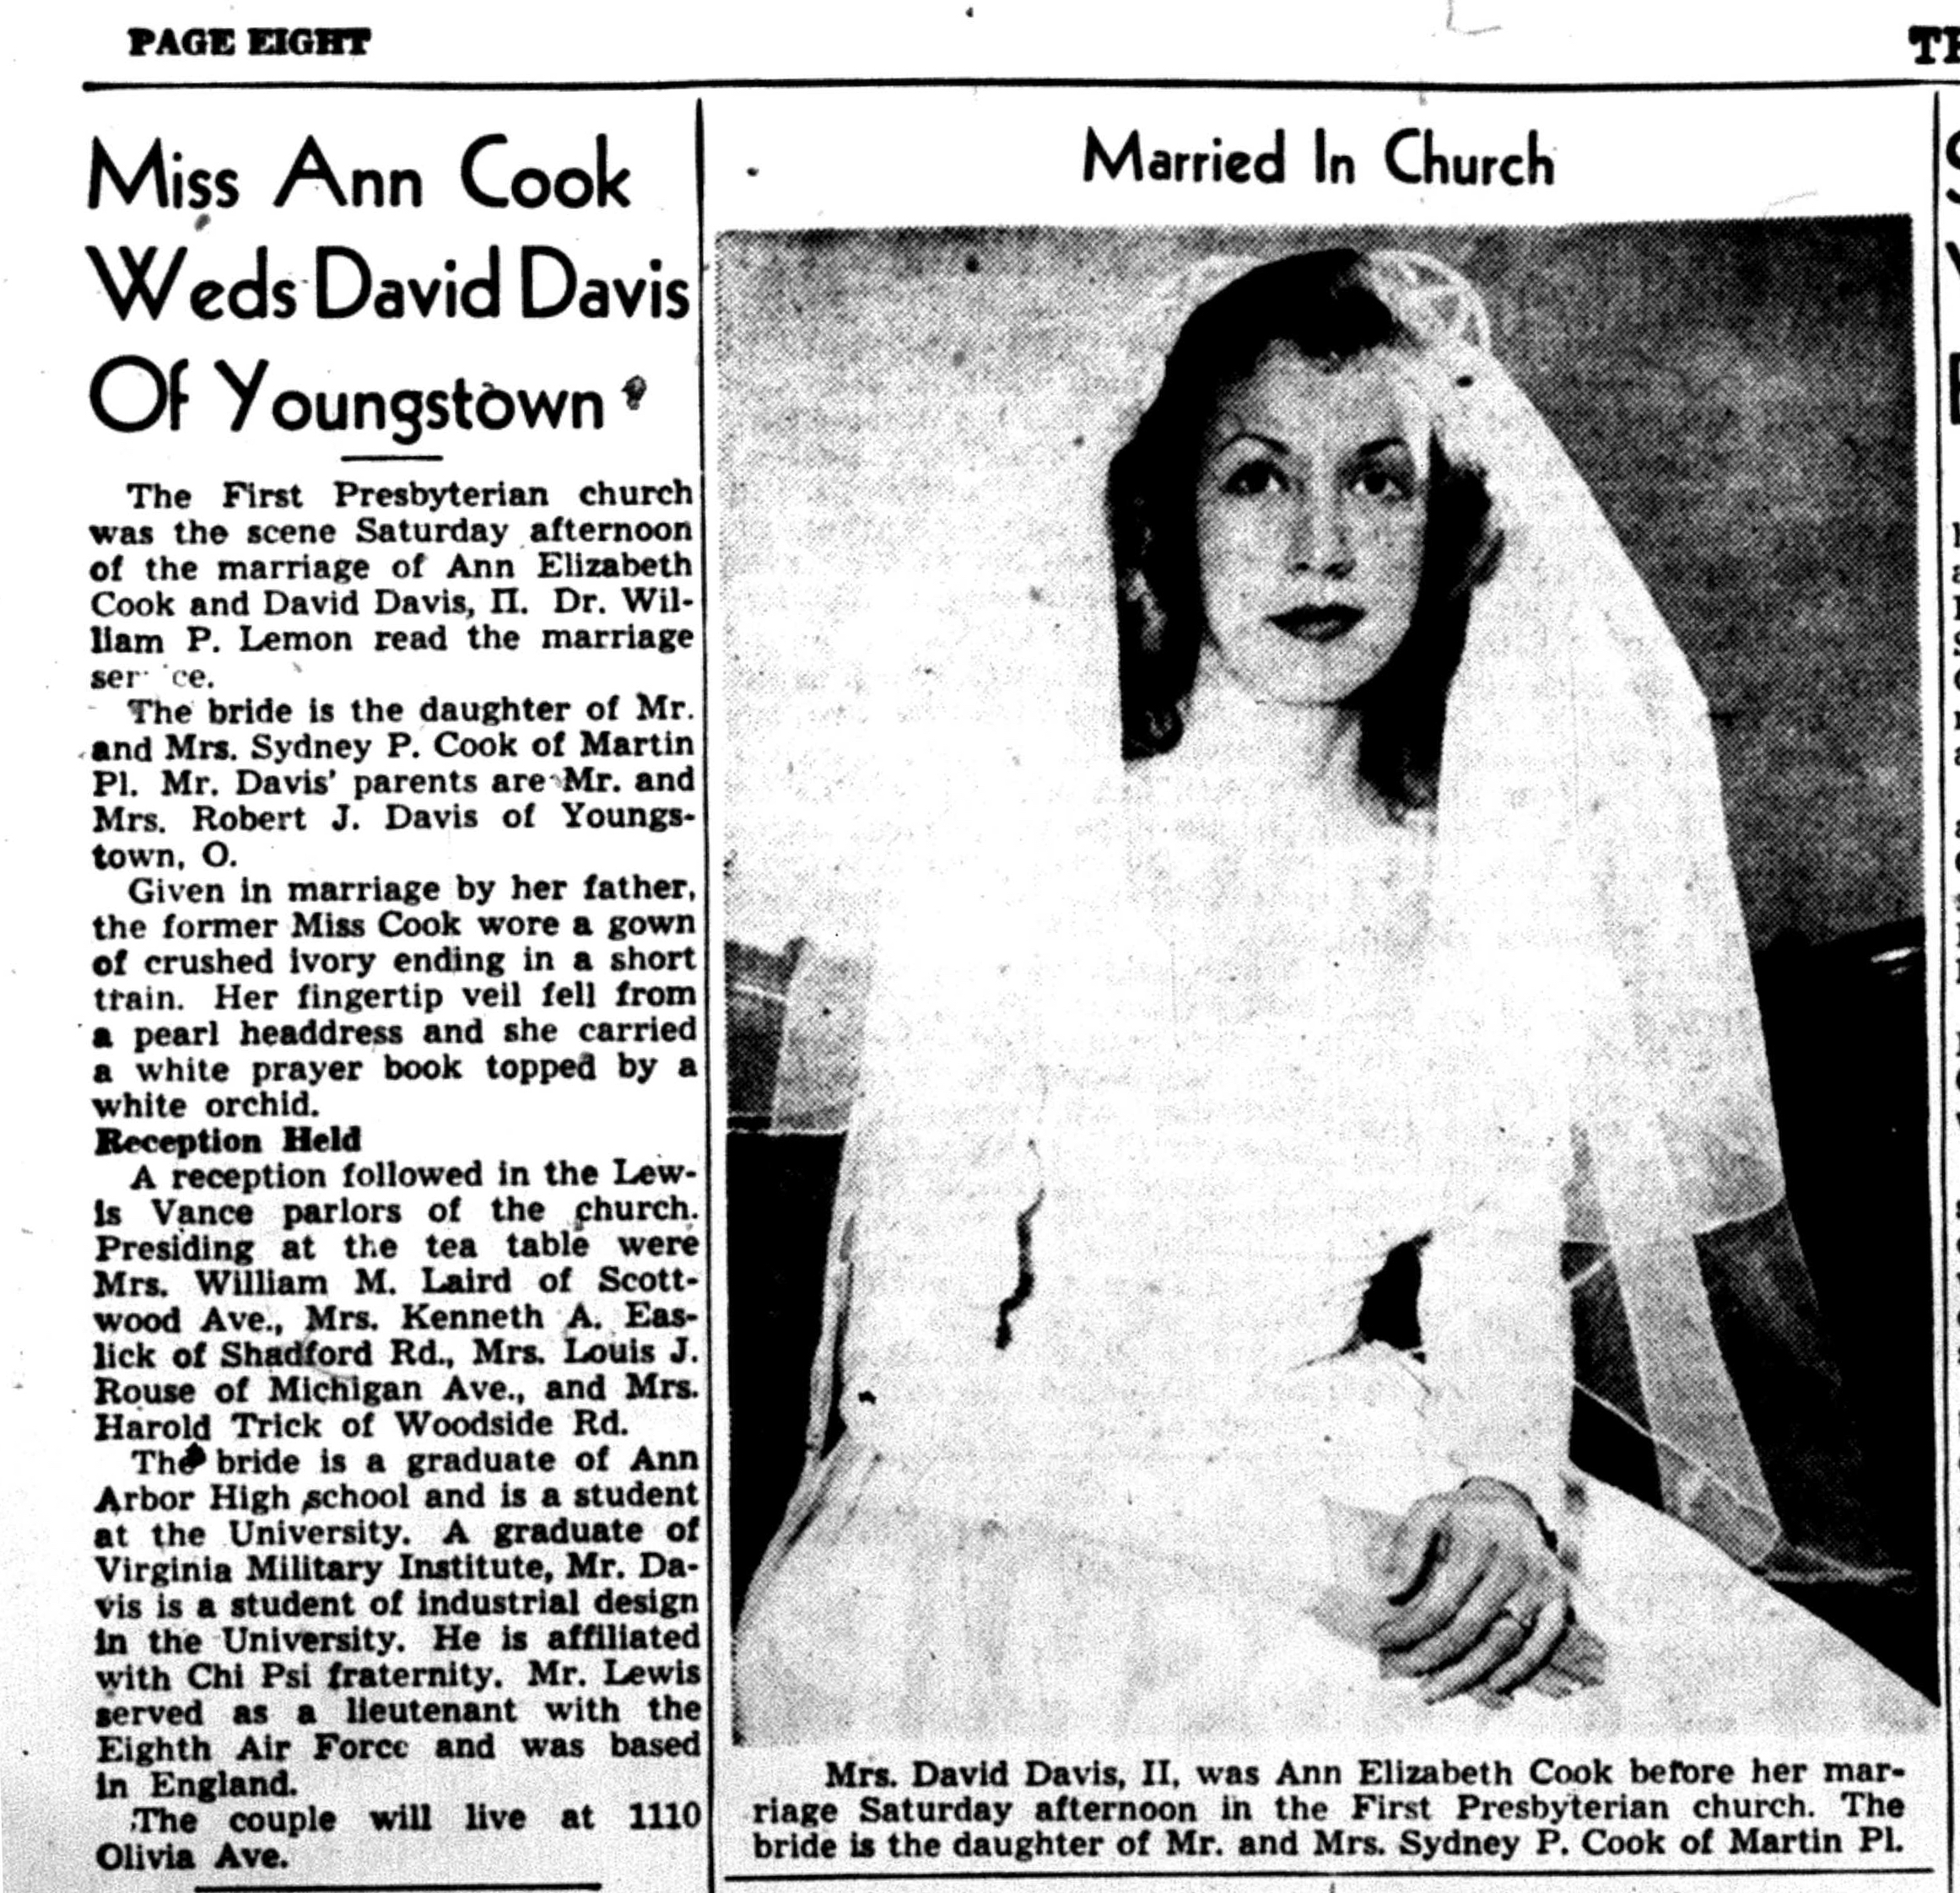 Miss Ann Cook Weds David Davis Of Youngstown image